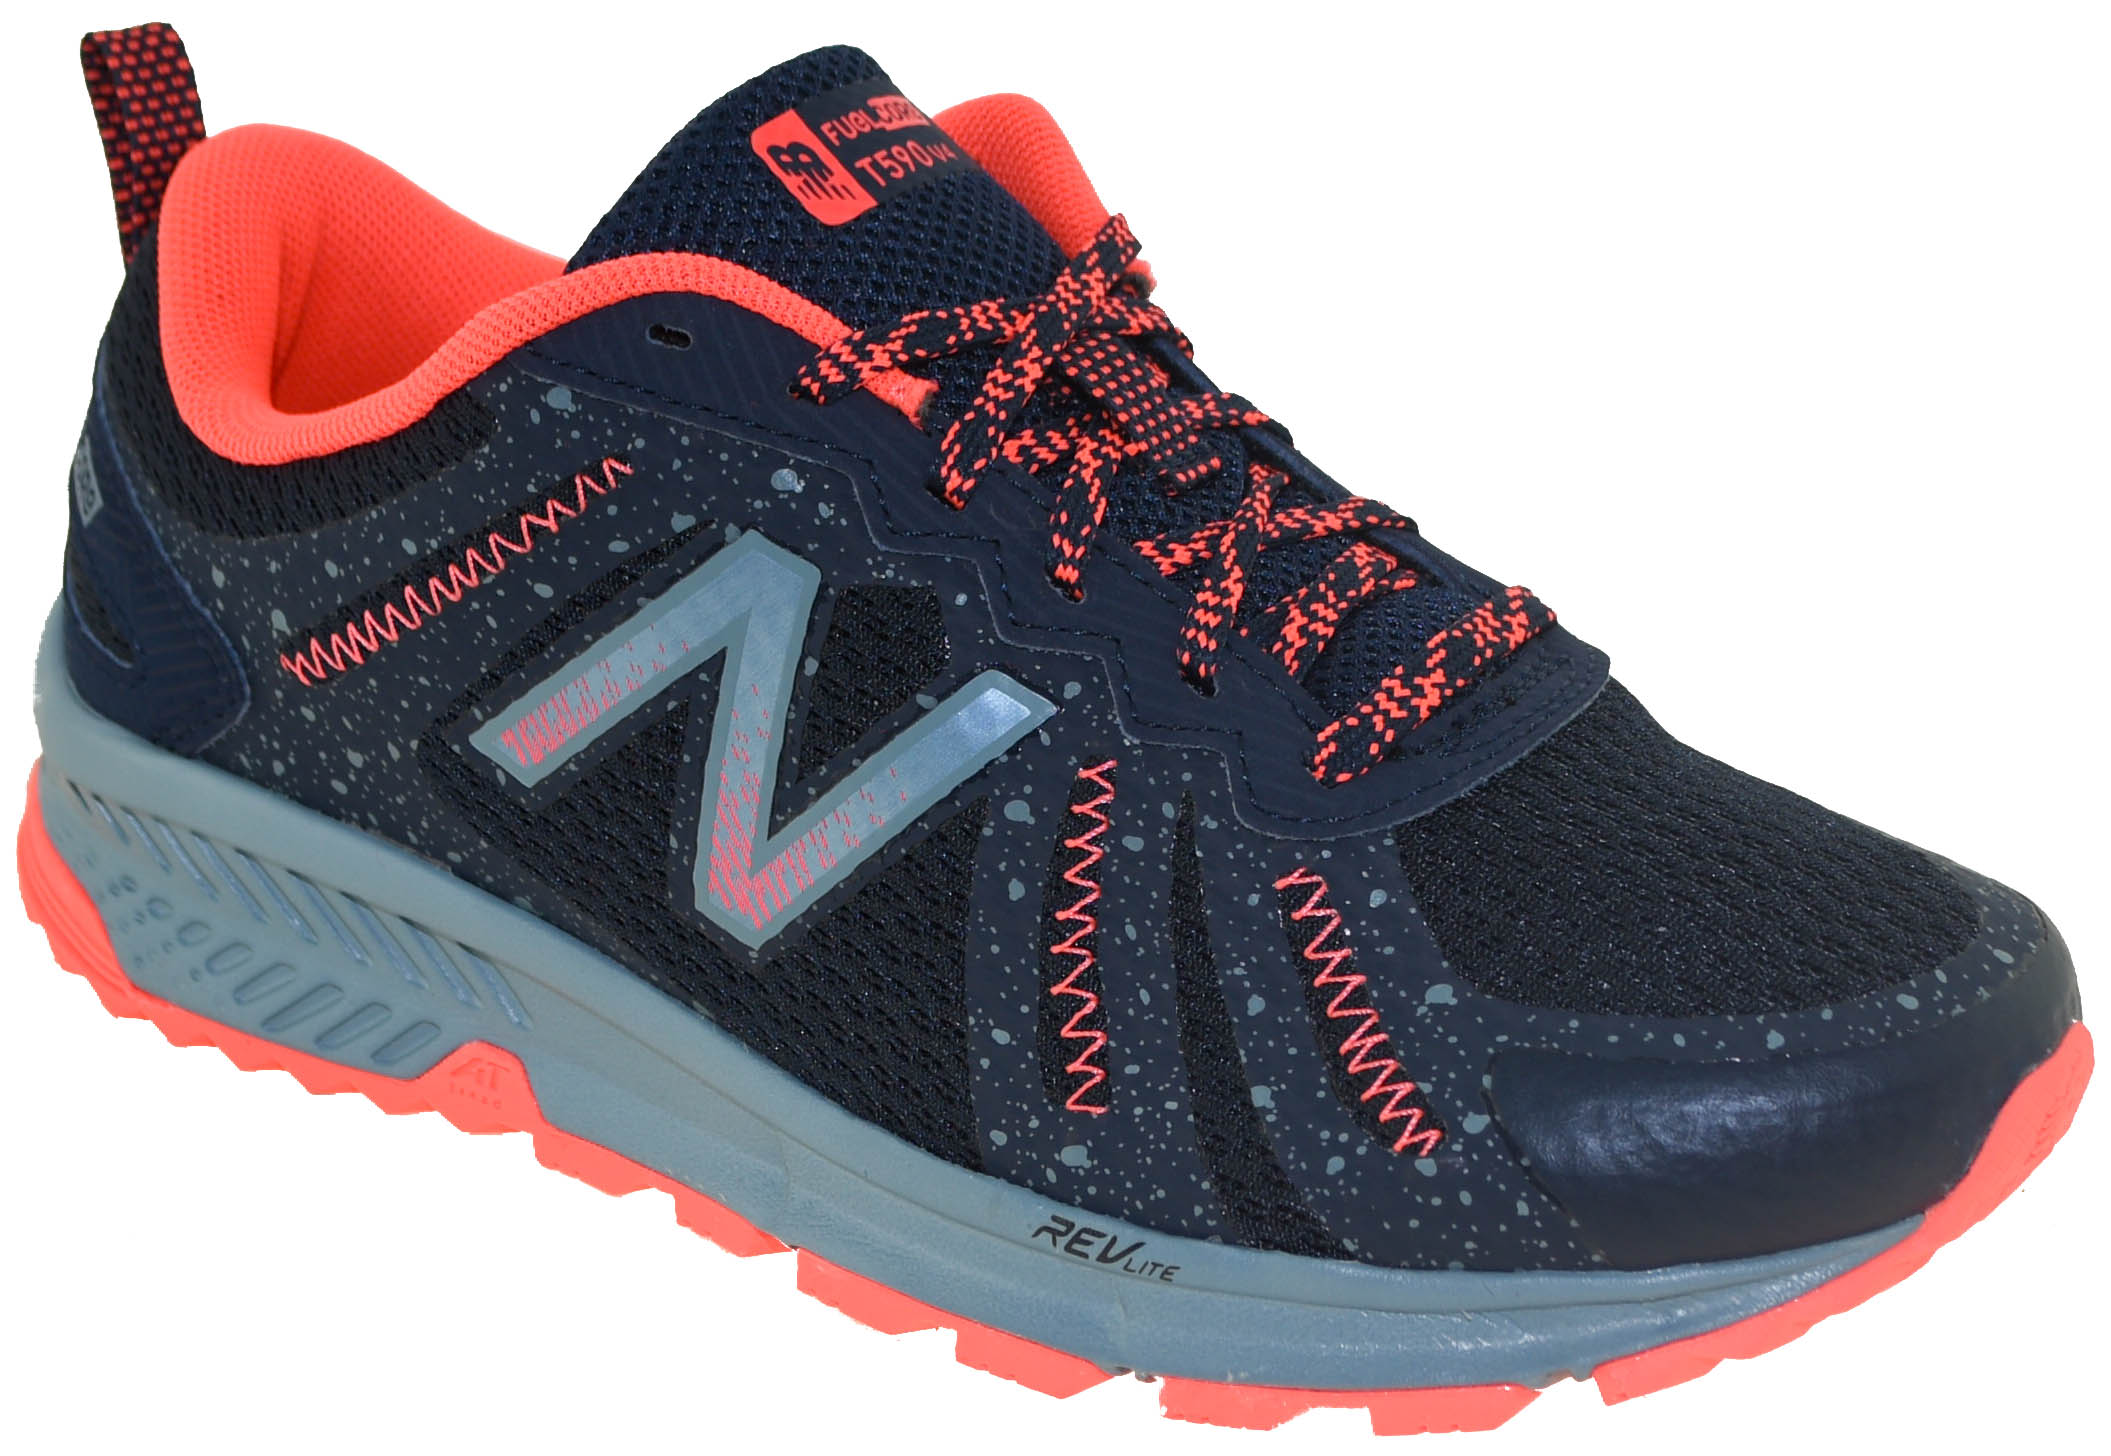 Analgésico muestra Influencia  New Balance Women's 590 v4 FuelCore Trail Running Shoes WT590LP4 | eBay